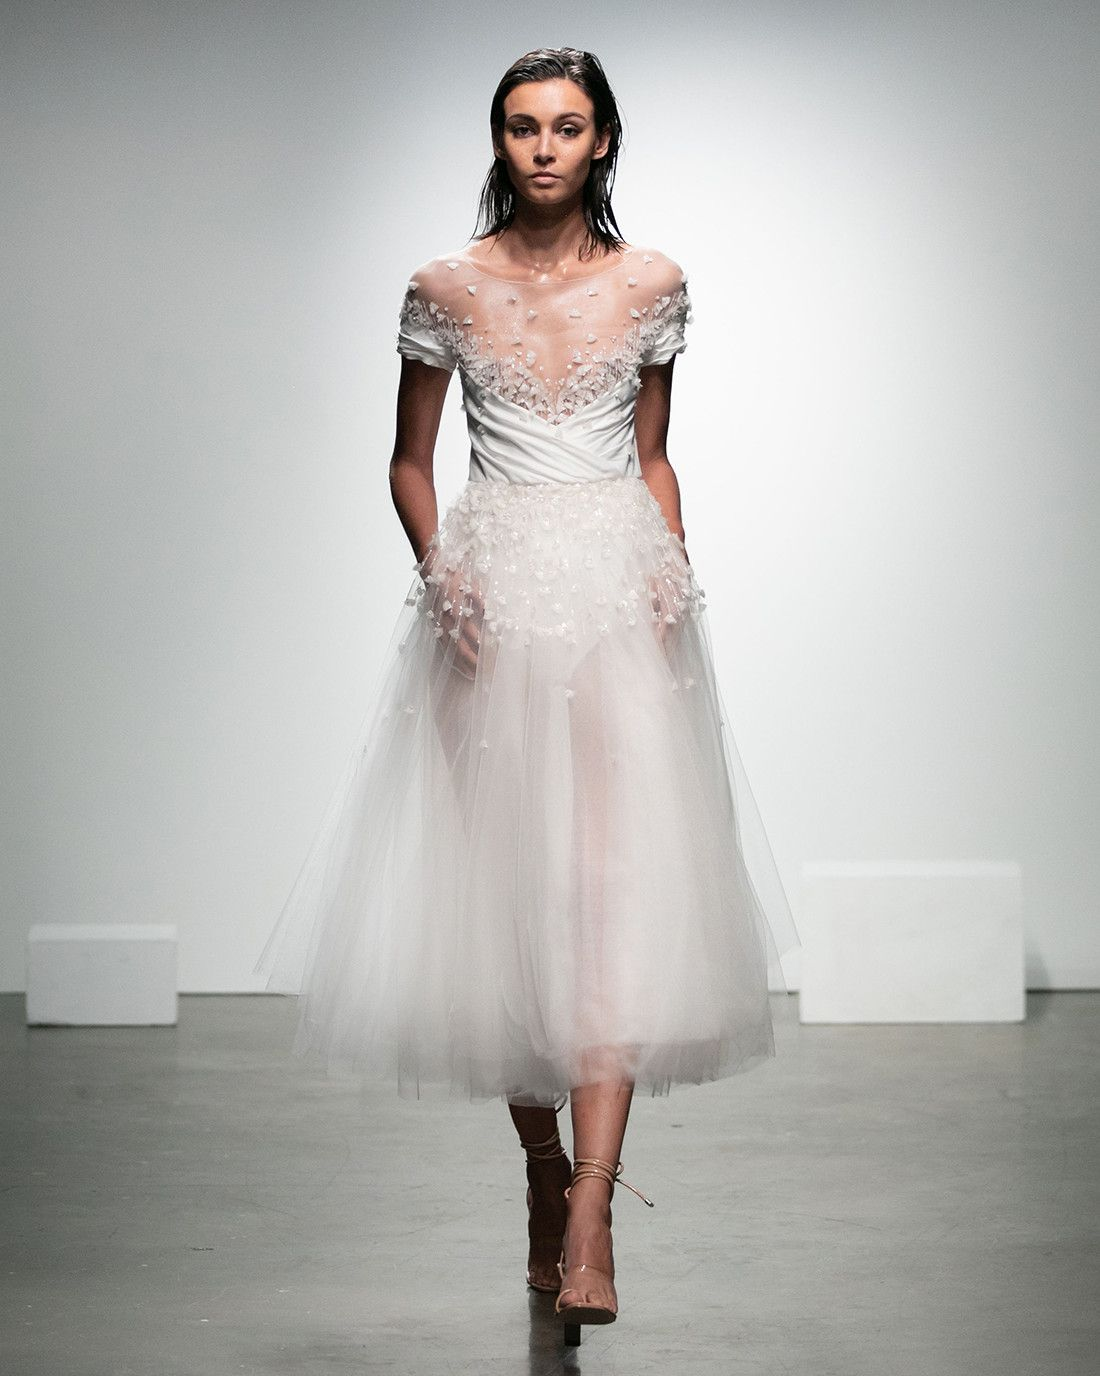 7ad8bf9d5439 Rime Arodaky Fall 2019 - Midi wedding dress with illusion neckline and  tulle skirt.  RimeArodaky  bfw  bfw2019  bridalfashionweek ...